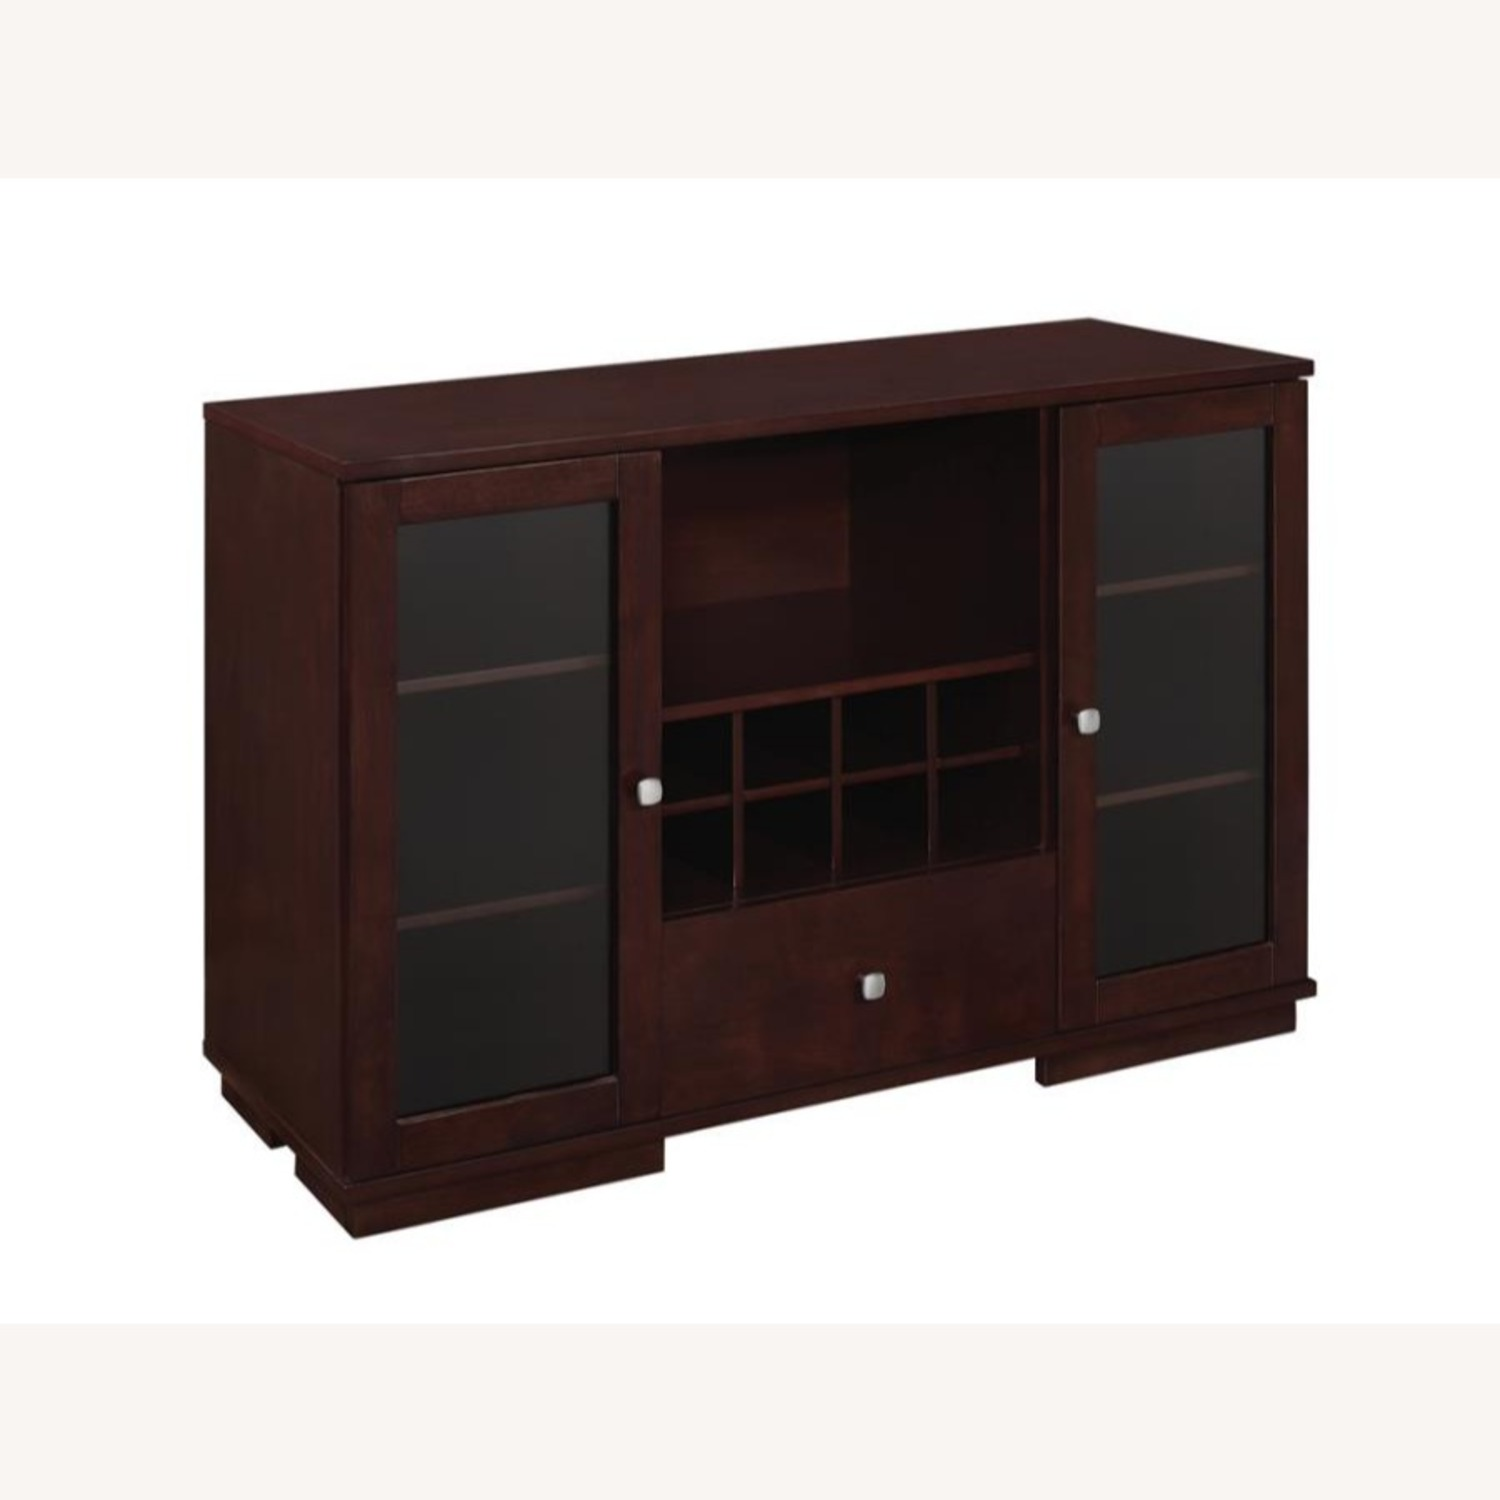 Server In Cappuccino Finish W/ Built-In Wine Rack - image-0